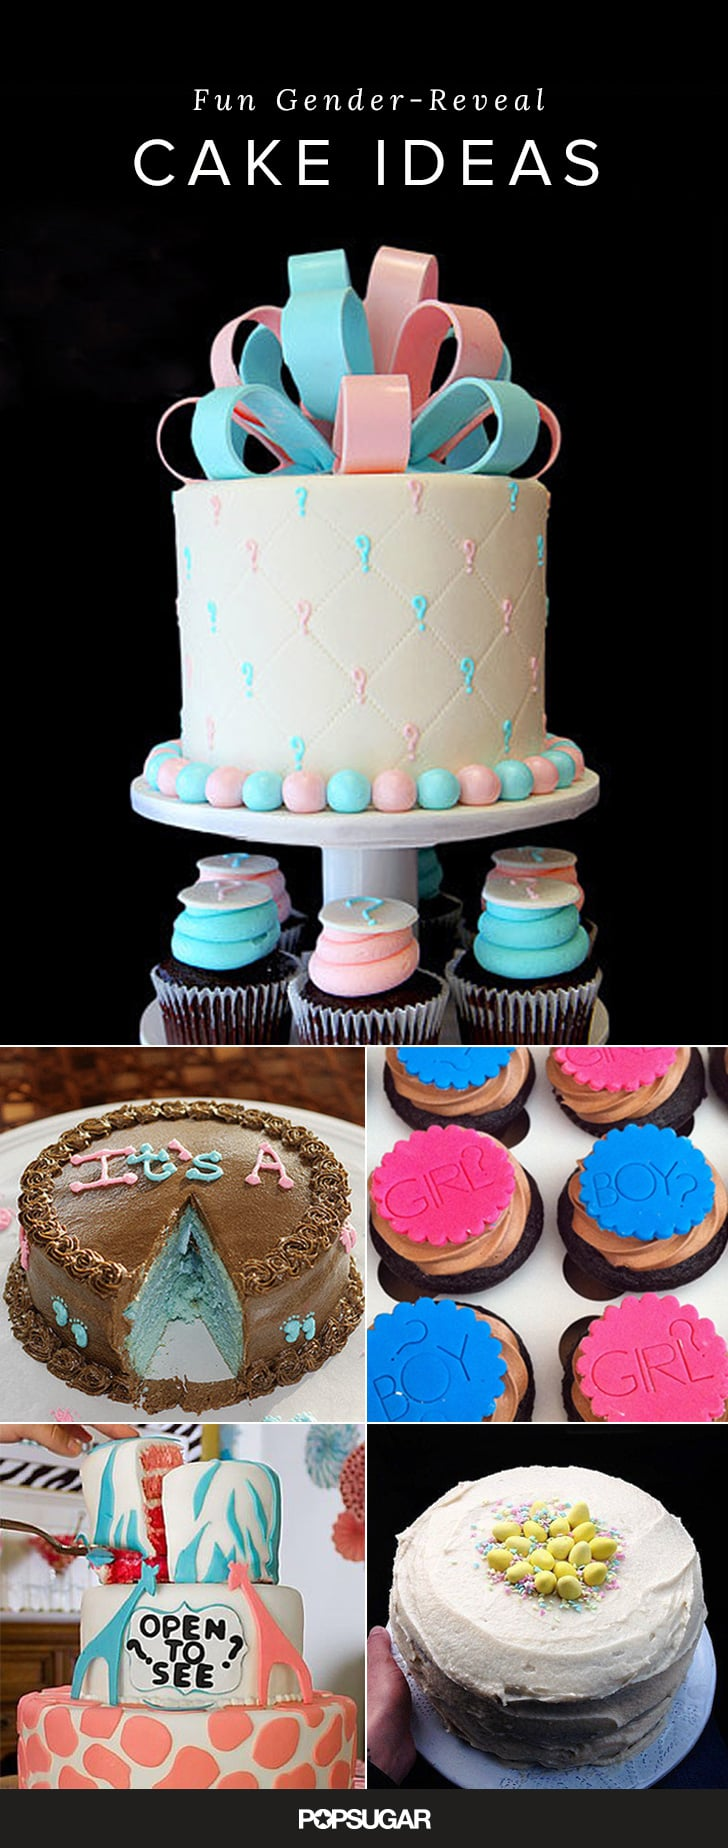 45+ Gender-Reveal Cakes to Inspire Your Big Unveiling